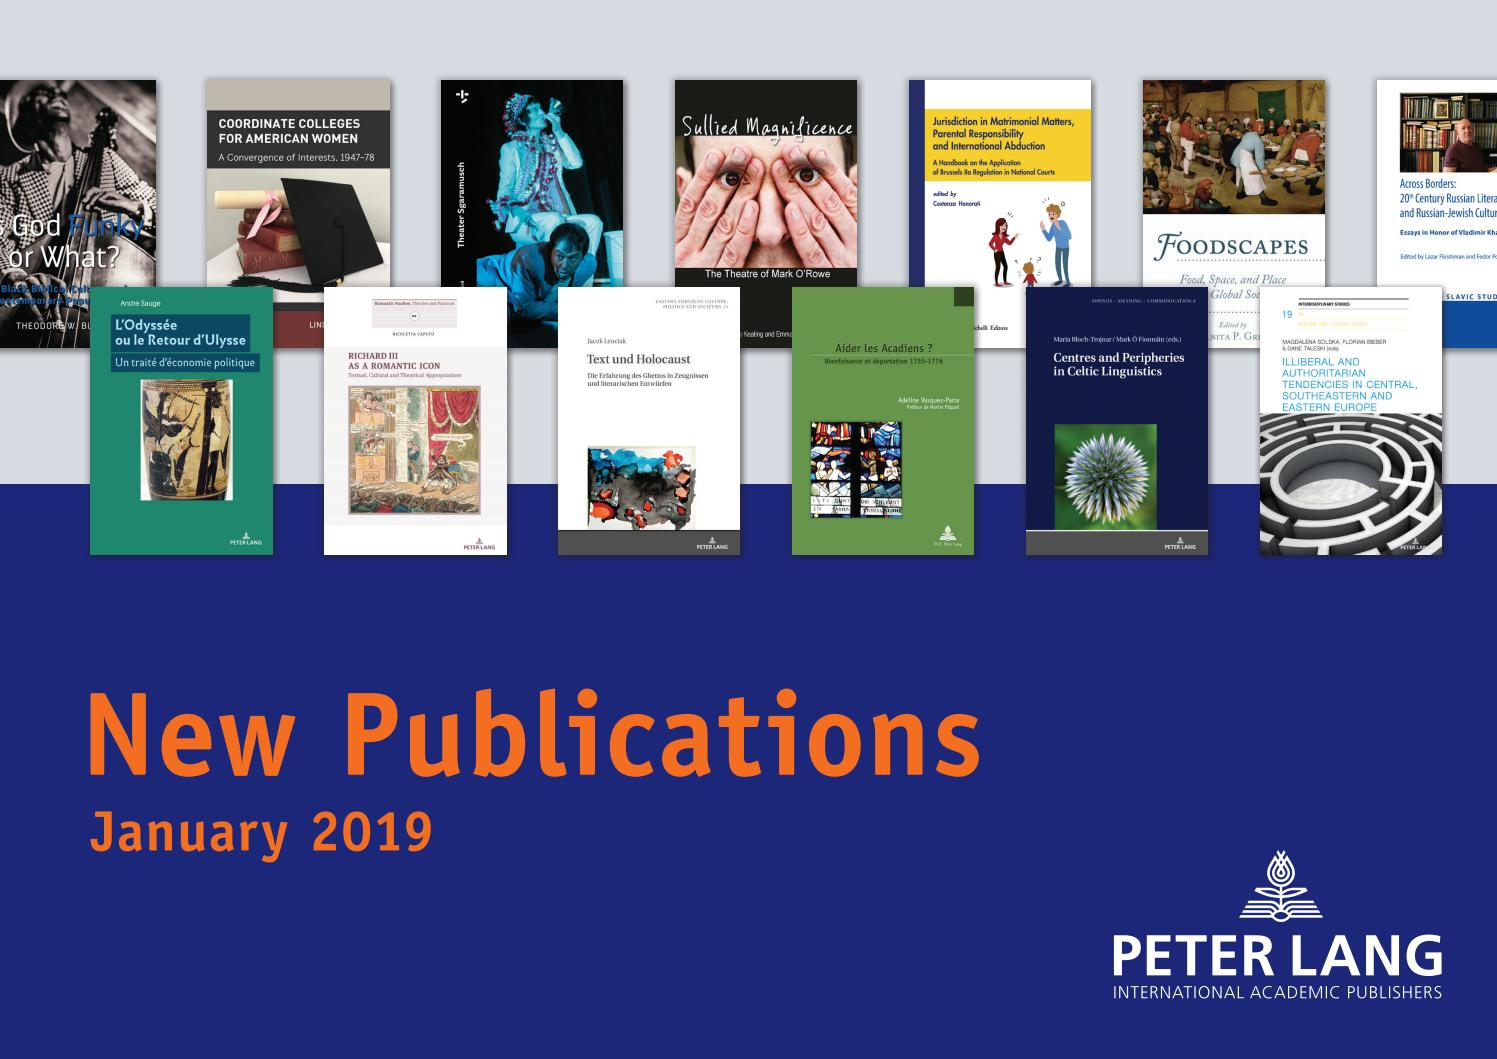 monthly catalogue january 2019 by peter lang publishing  data systems austria ag in insolvenz #7